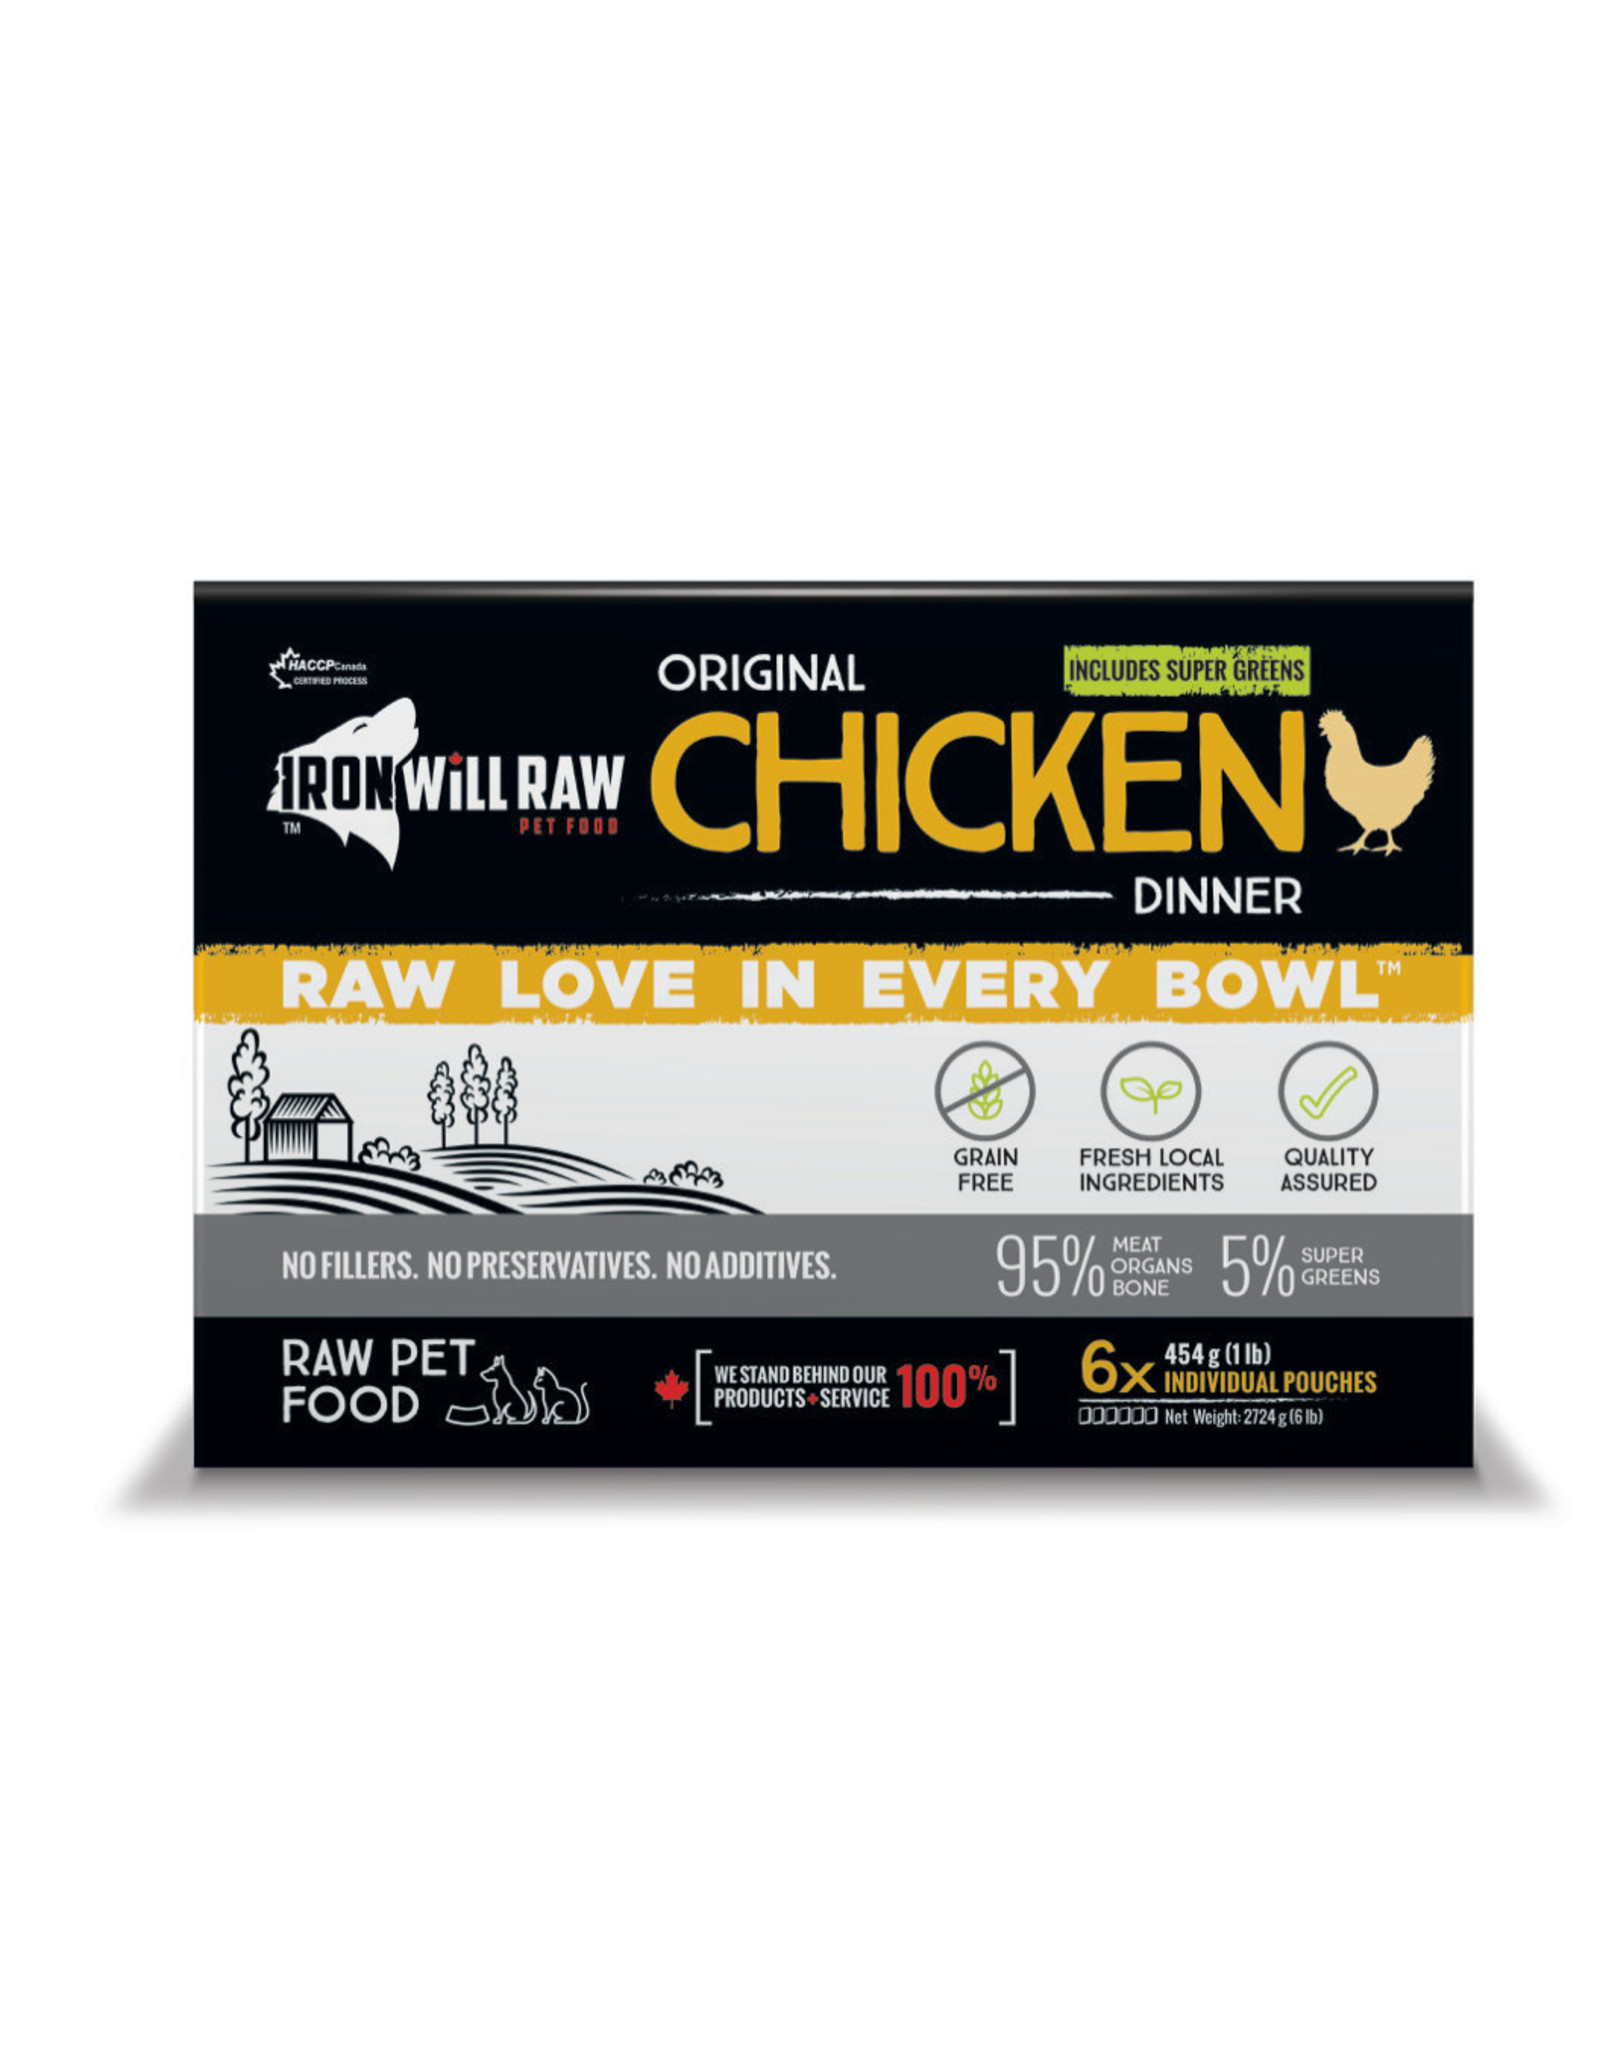 Iron Will Raw Iron Will Raw - Original Chicken 6LB